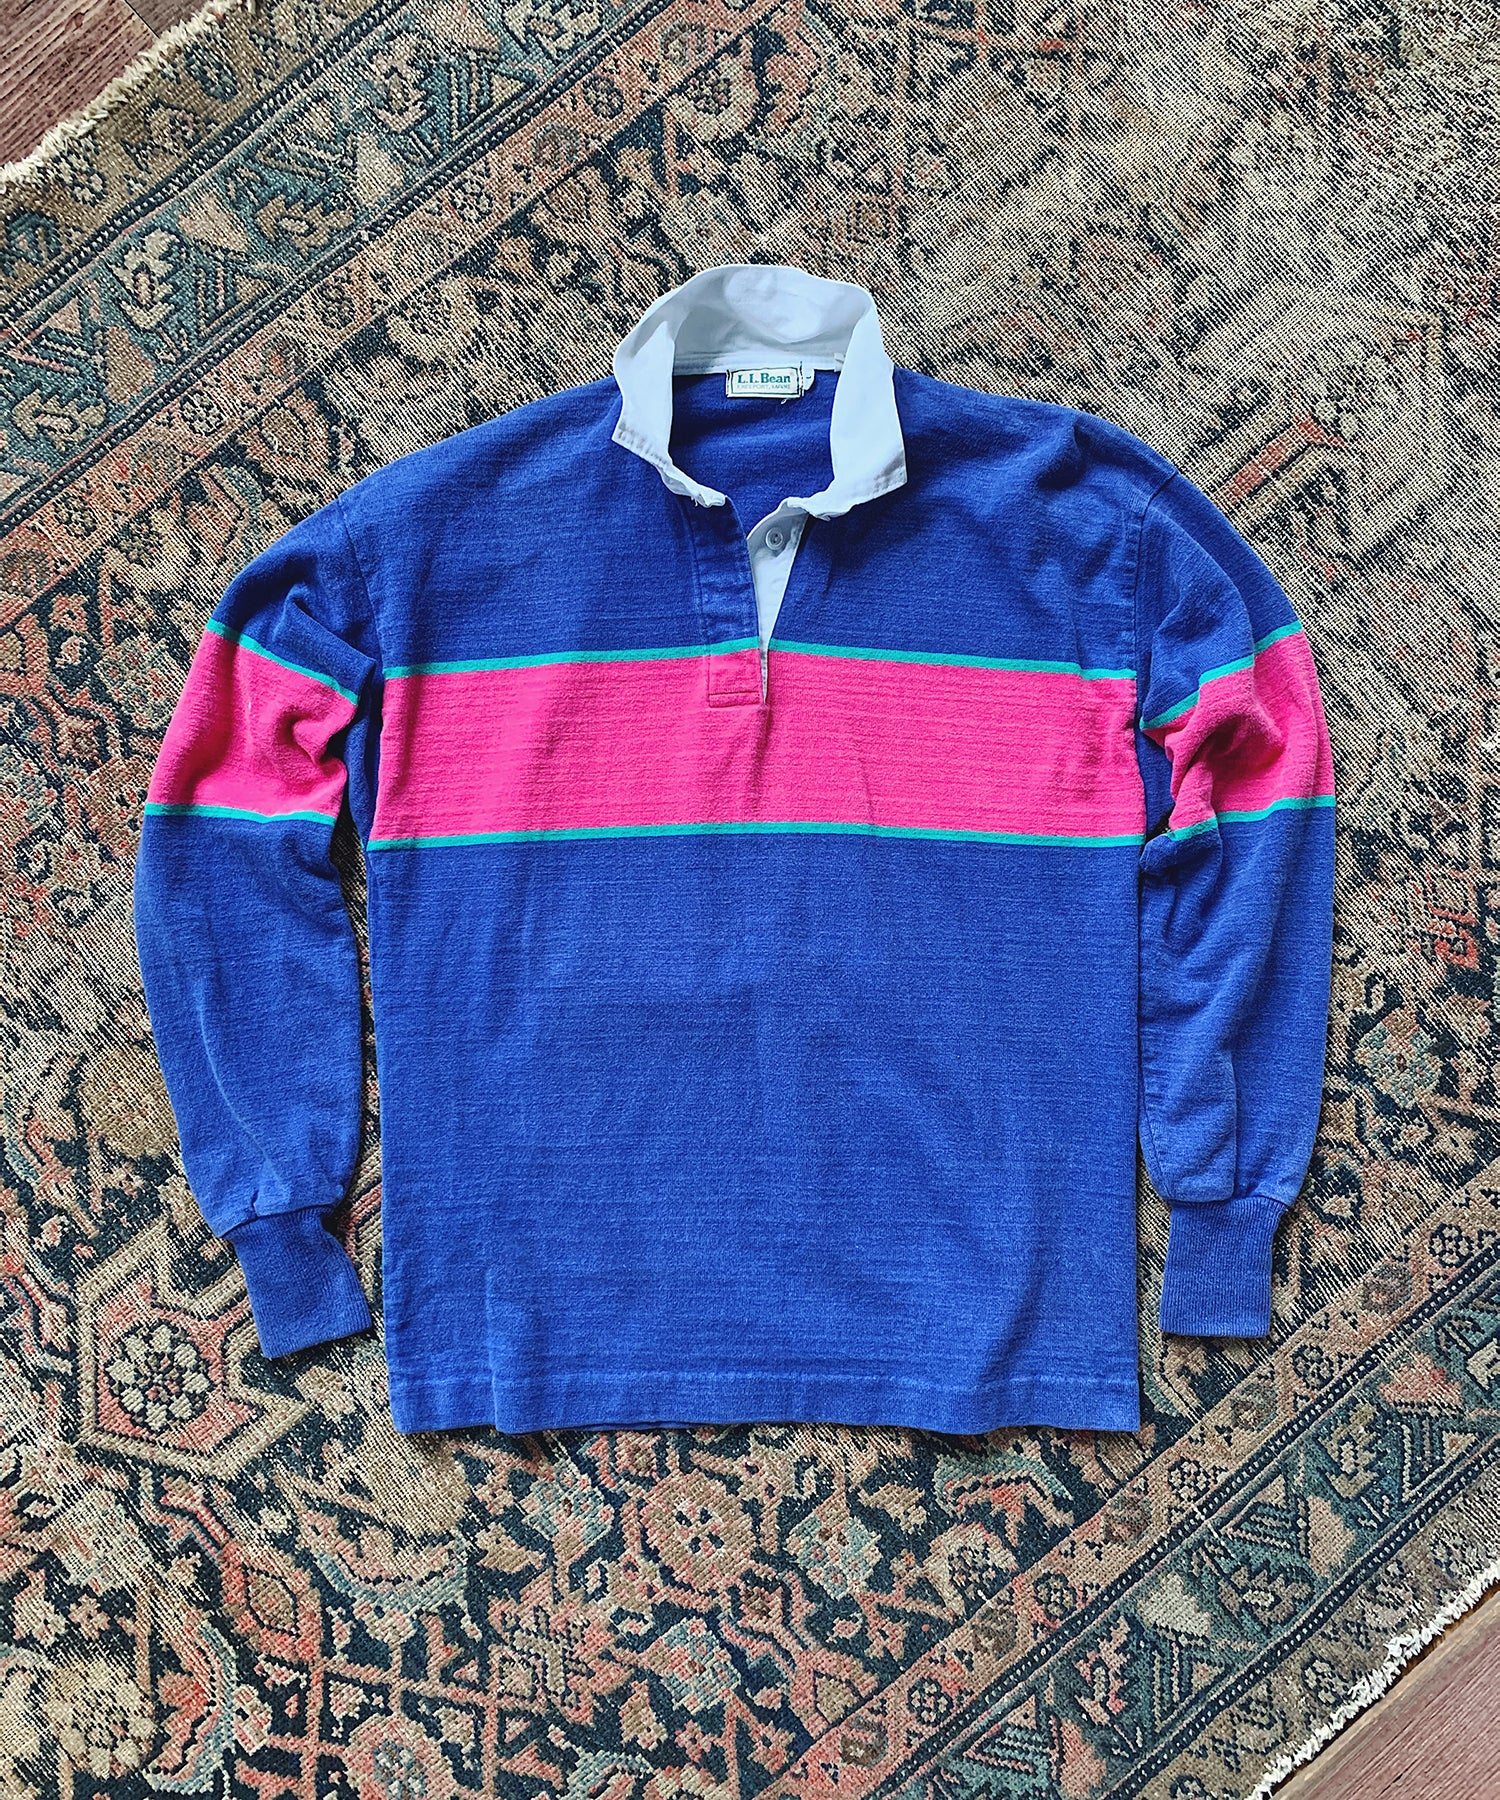 Item #13 - Todd Snyder x Wooden Sleepers 1980's Rugby Shirt in Blue with Pink stripe - SOLD OUT